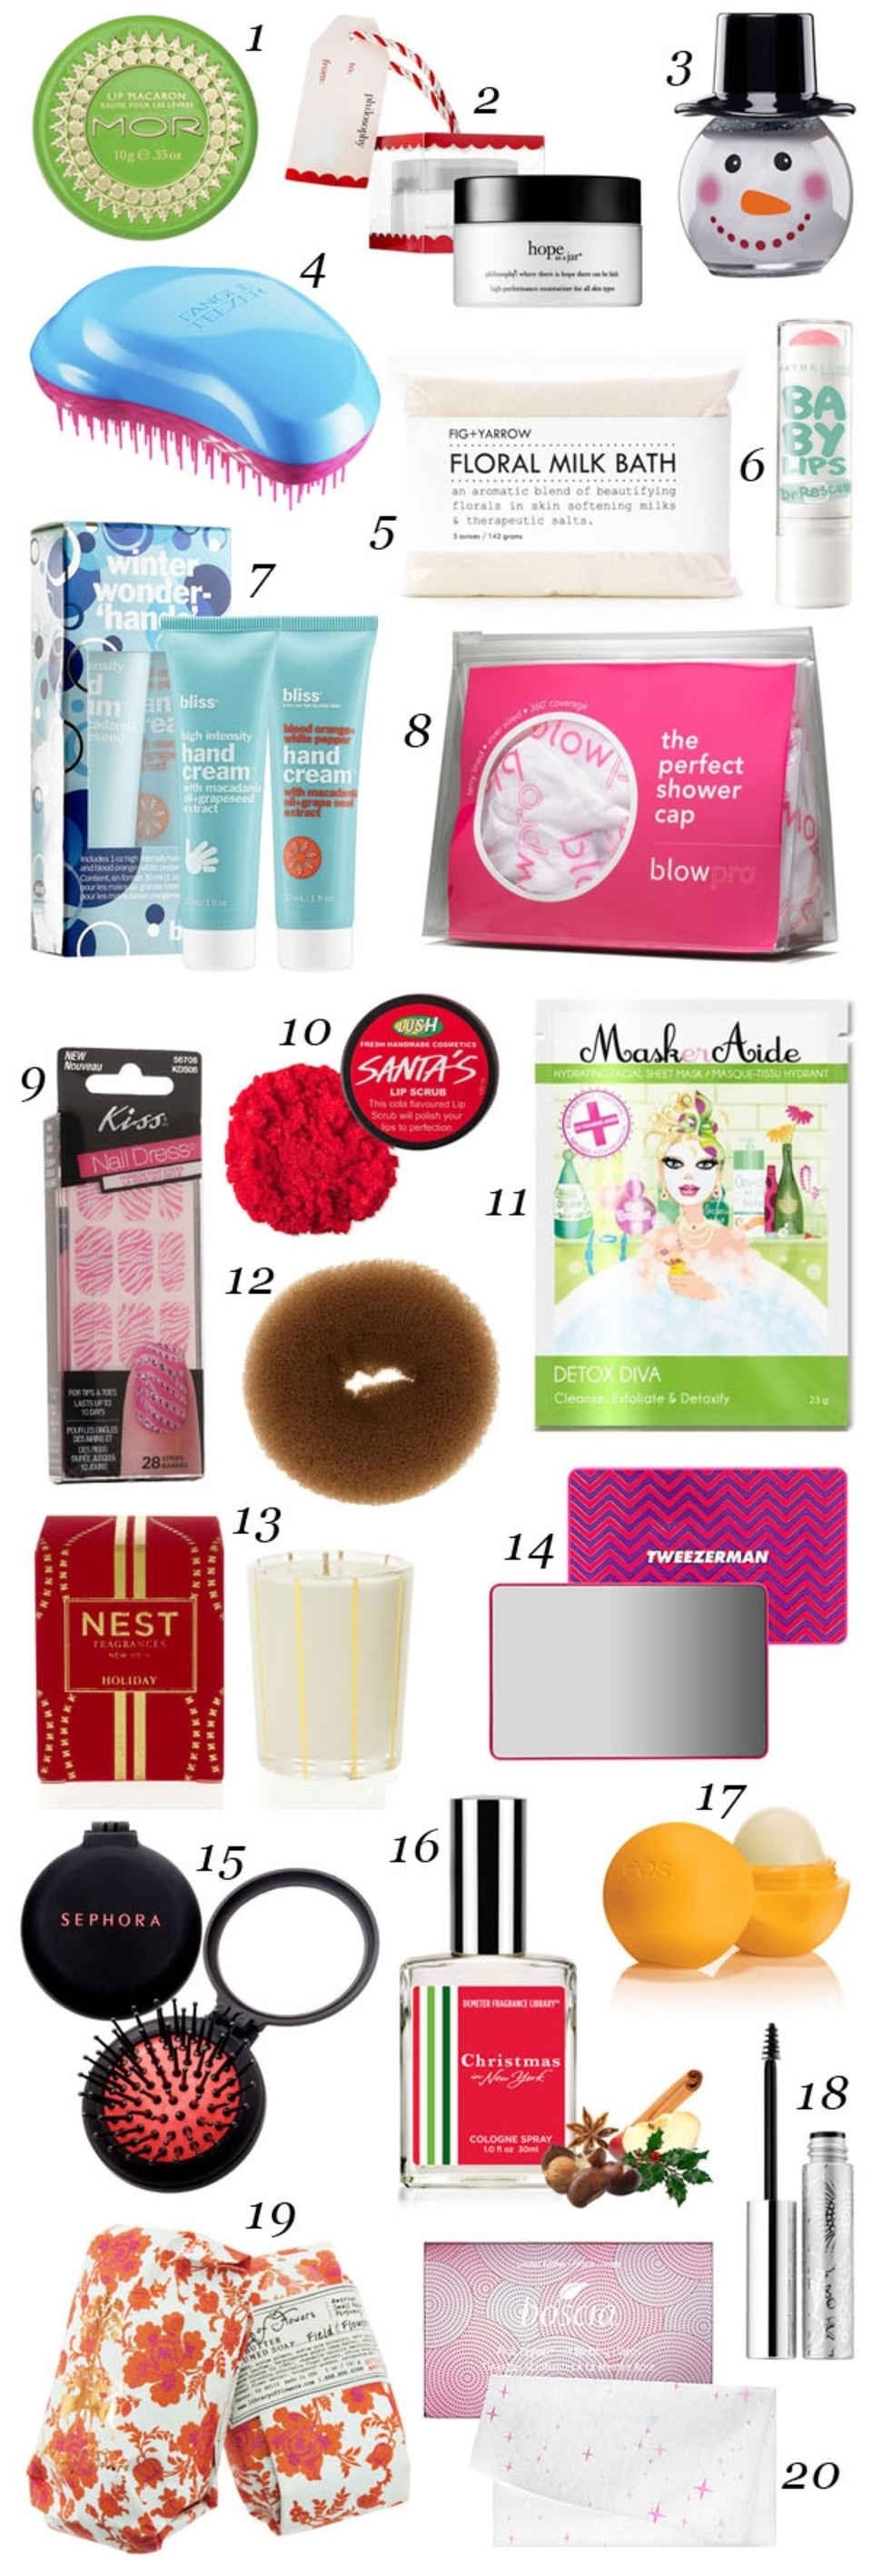 10 Stylish Christmas Gift Ideas For Teenagers 2013 20 beauty stocking stuffer ideas all 20 or less stocking